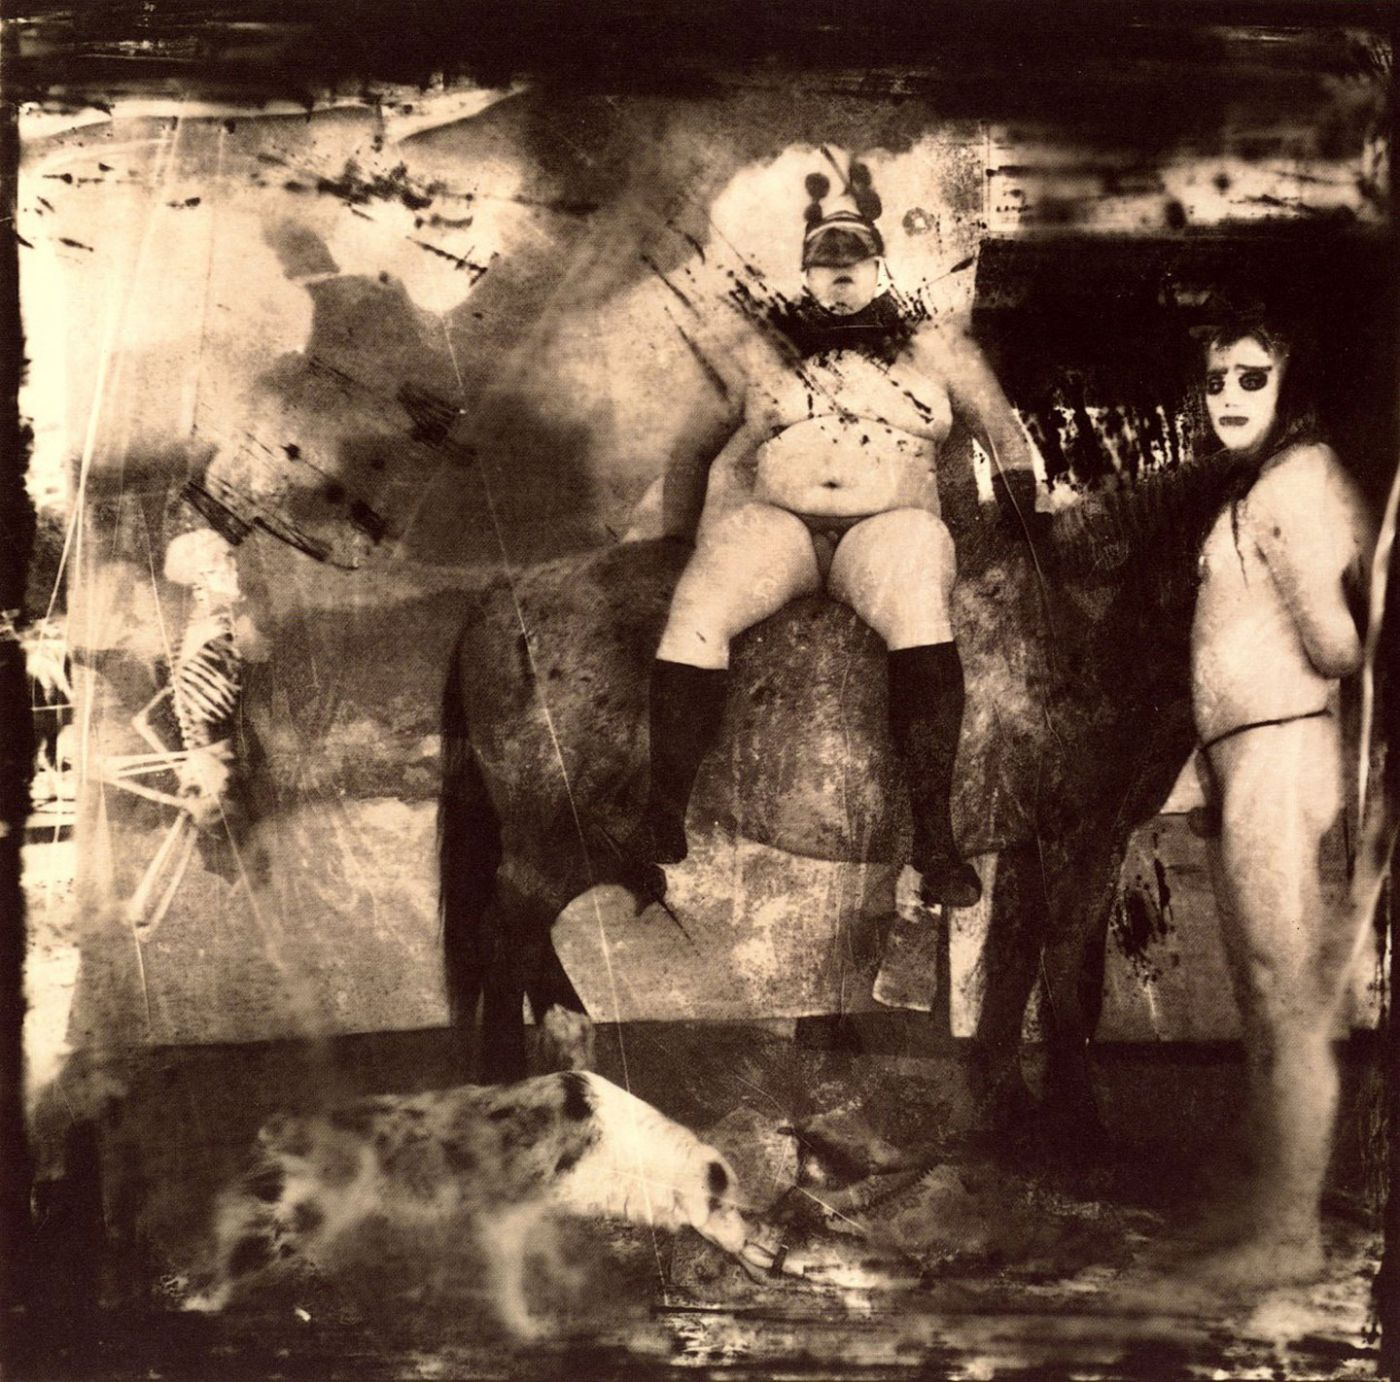 Joel-Peter Witkin: Gods of Earth and Heaven (First Edition) [SIGNED ASSOCIATION COPY]